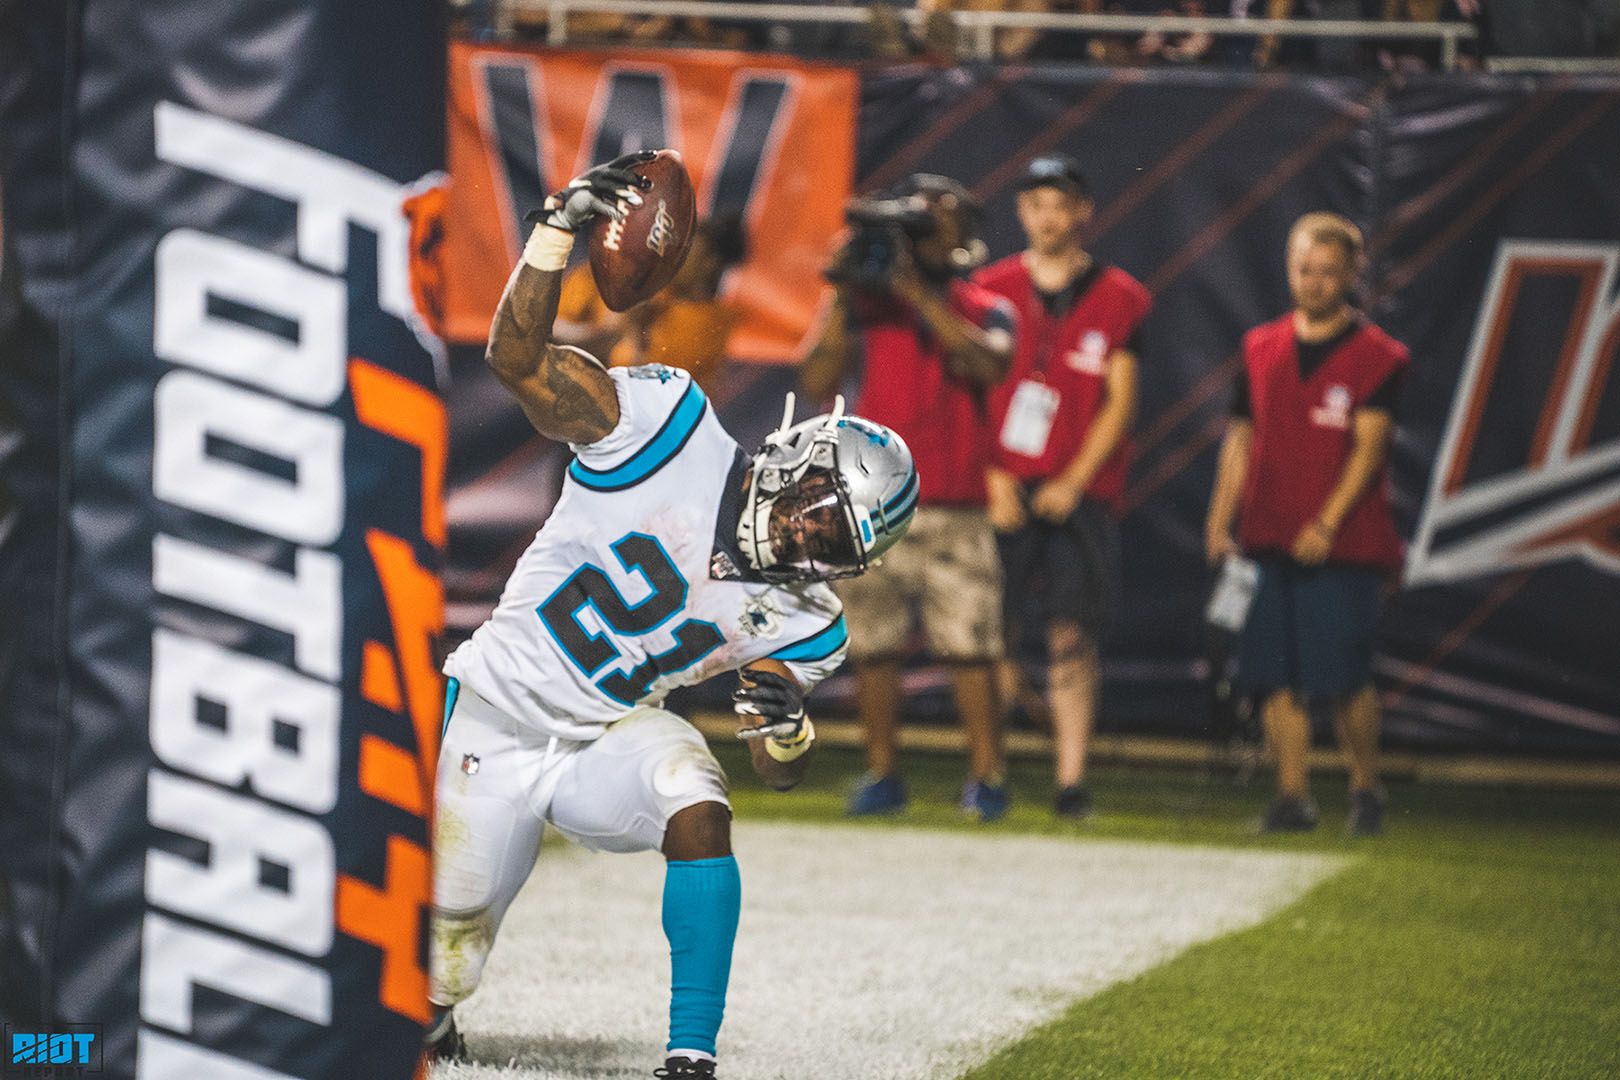 Photo Gallery: Panthers Vs Bears Preseason Game 1